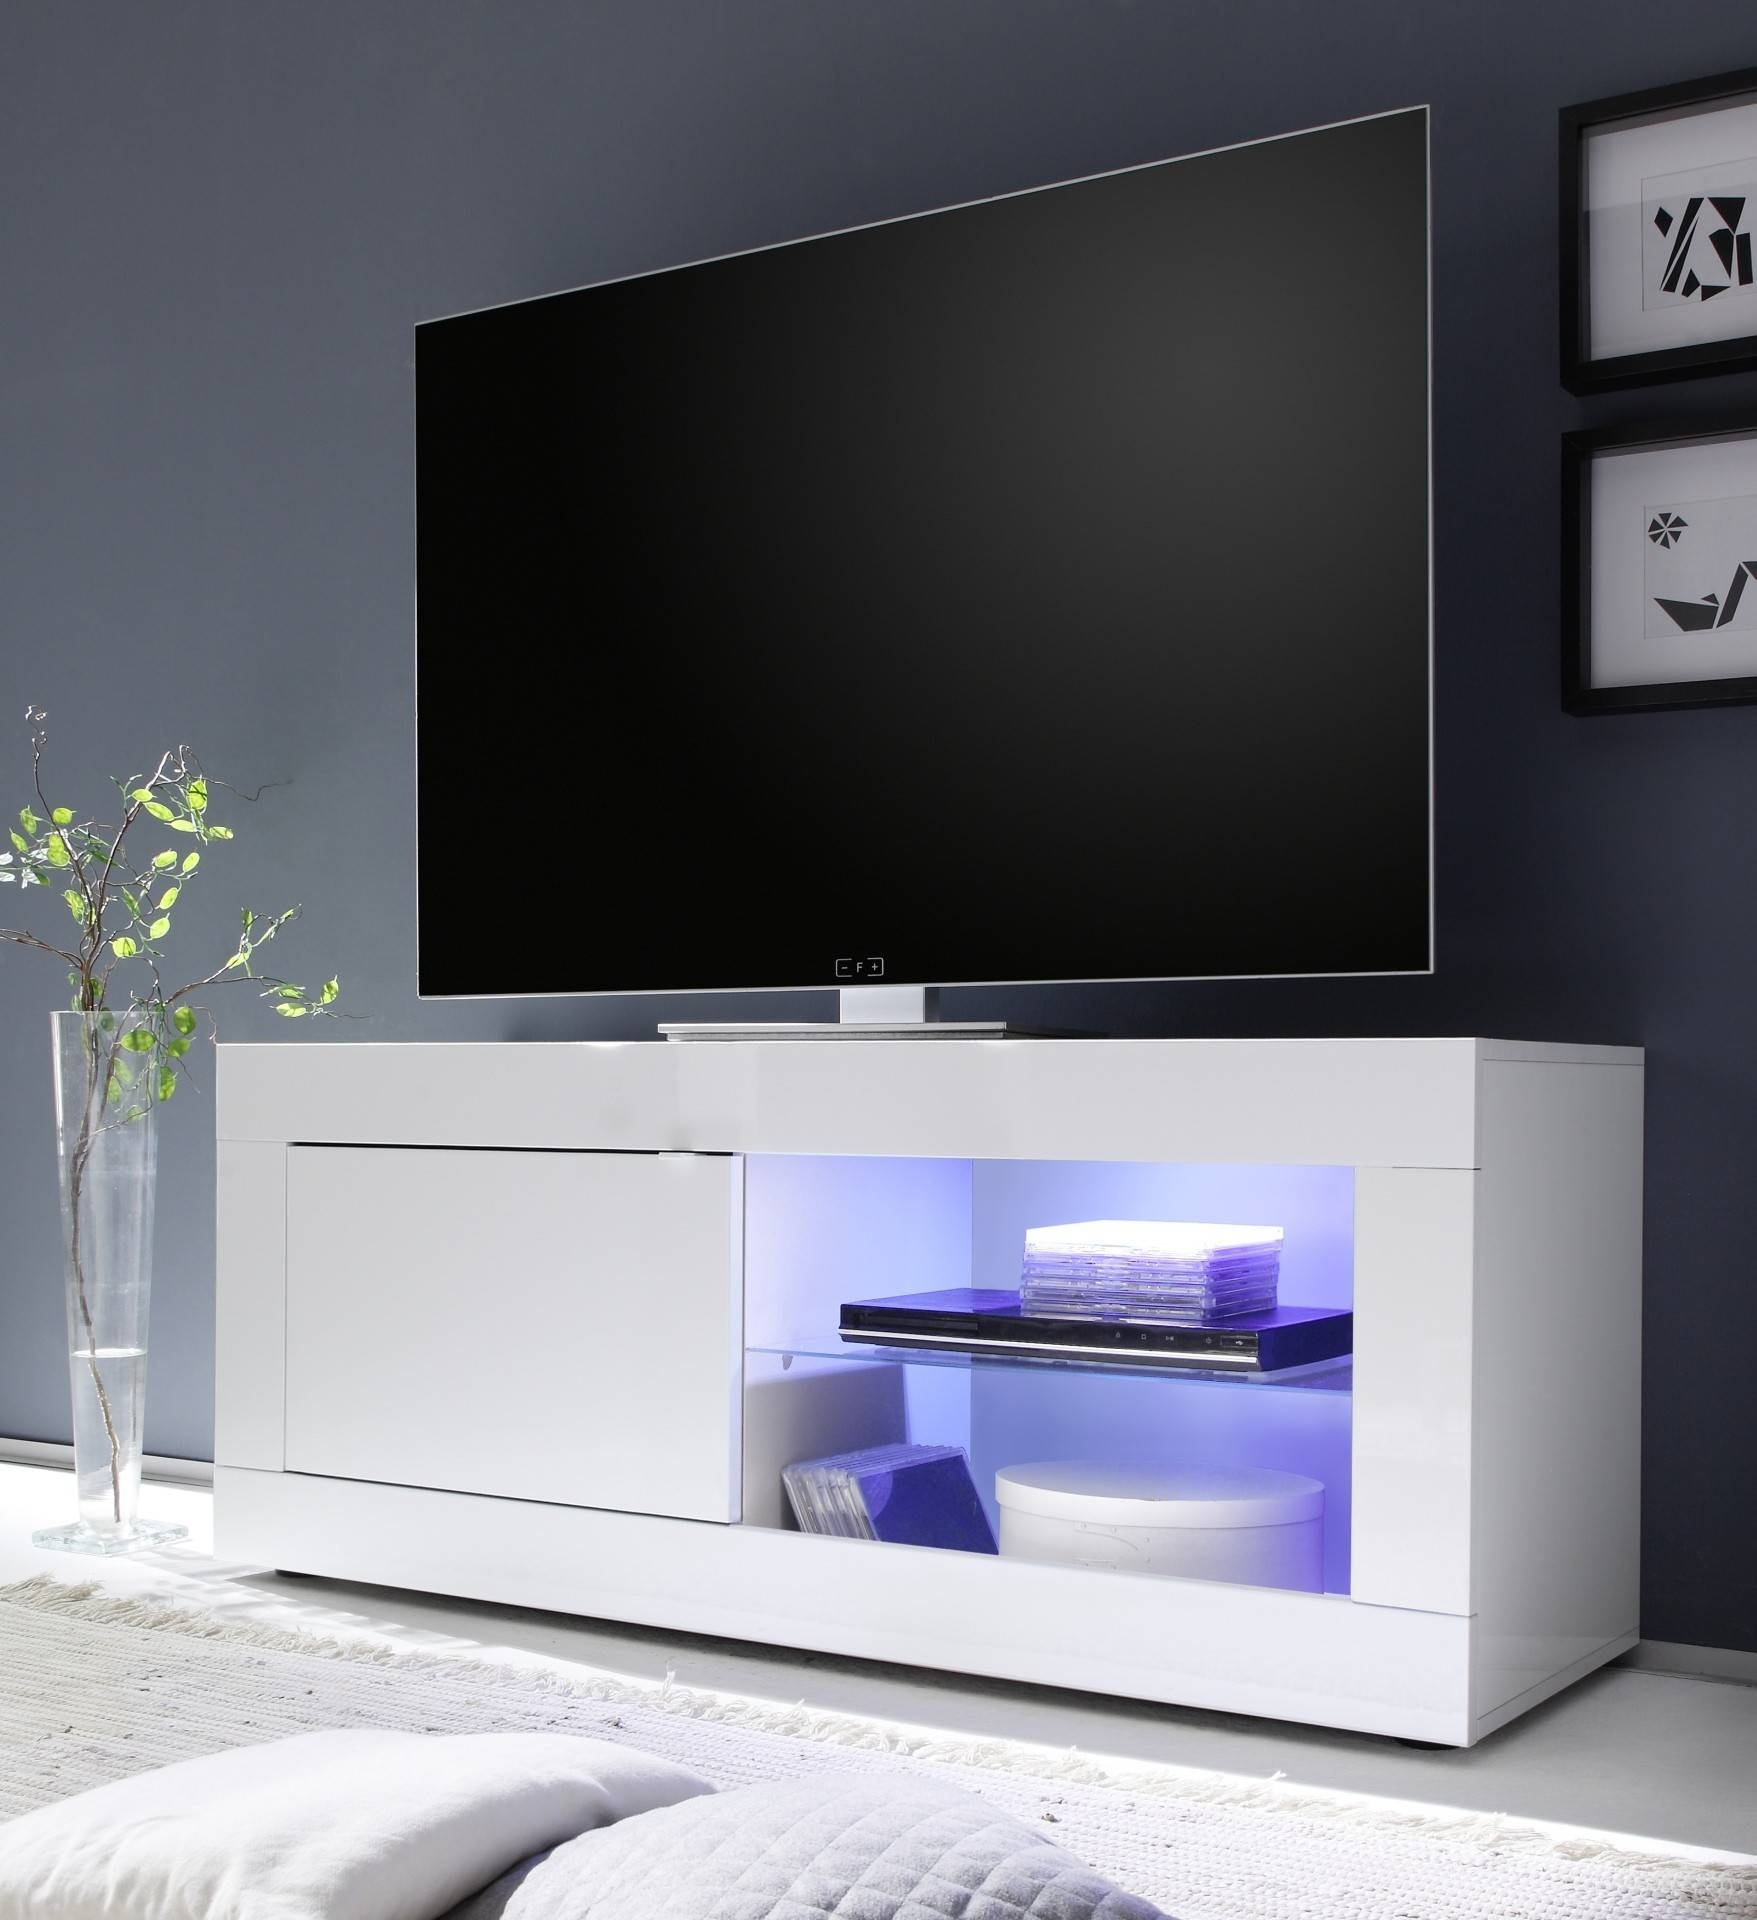 Bench. High Gloss Tv Bench: Modern Tv Stand Cm High Gloss Cabinet inside Large White Tv Stands (Image 1 of 15)